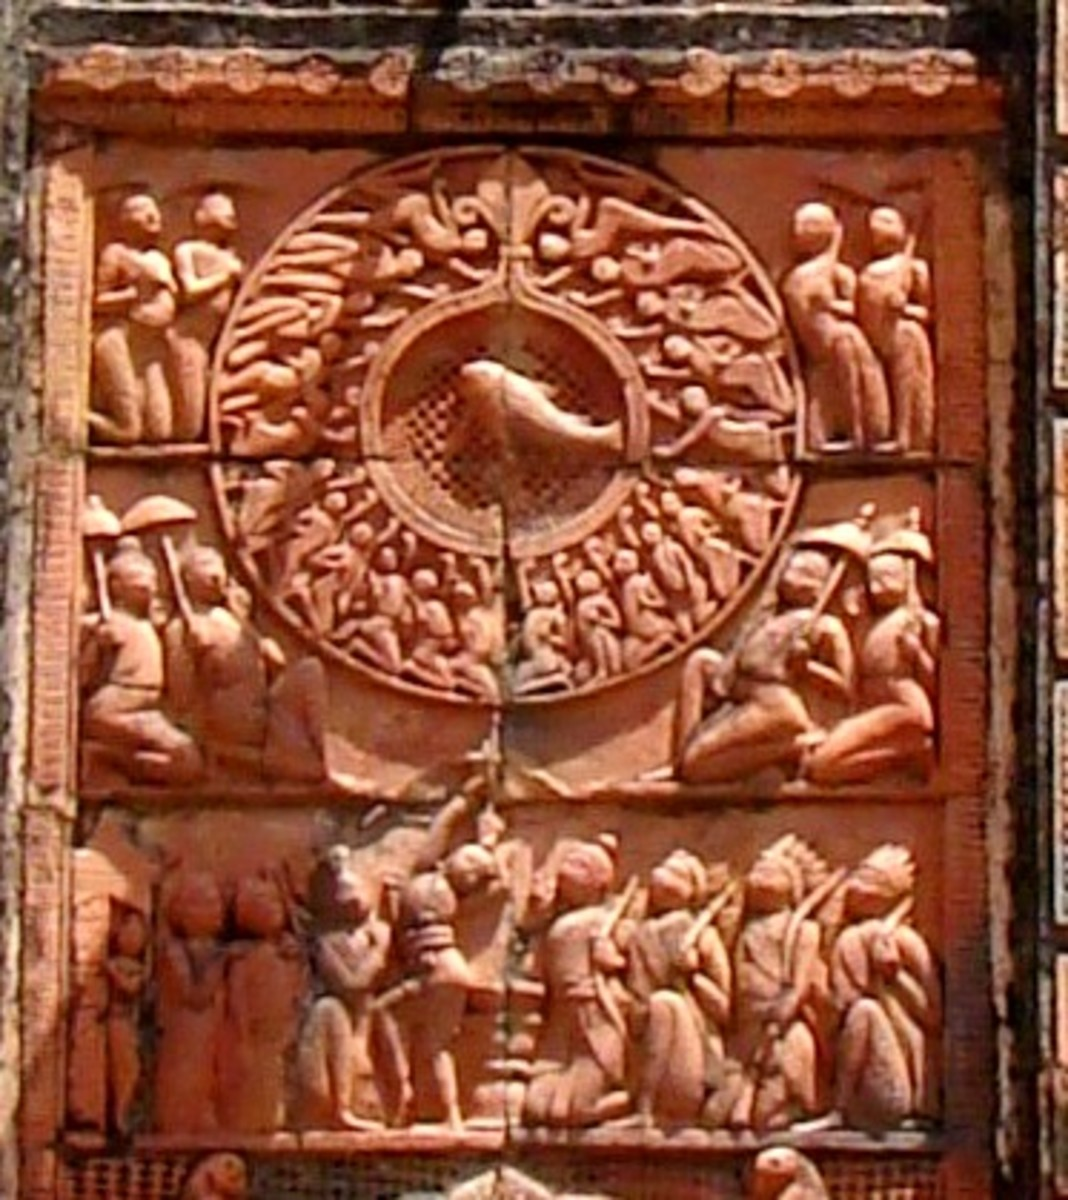 A scene from the epic Mahabharata where the ace archer Arjuna is aiming at the fish hung high up. From the Navaratna temple of Chhoto taraf.